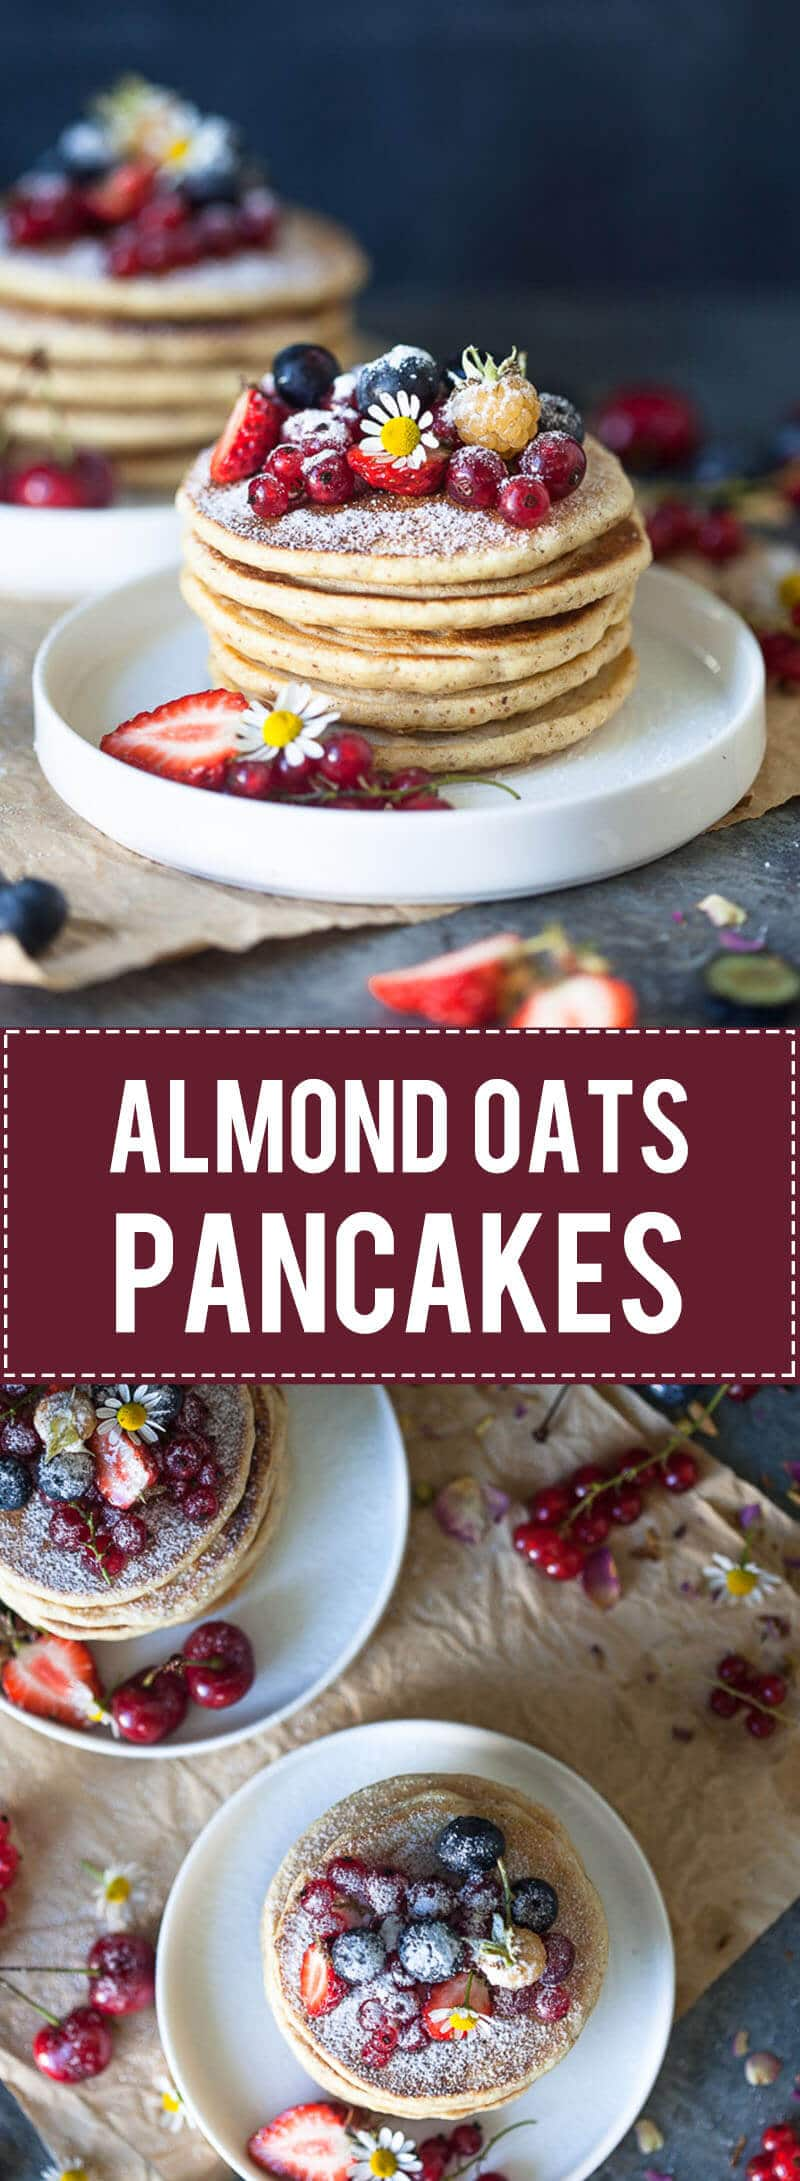 The Softest Almond Oats Pancakes are super easy to make, right in your food processor. Super soft, delicious and dairy-free!